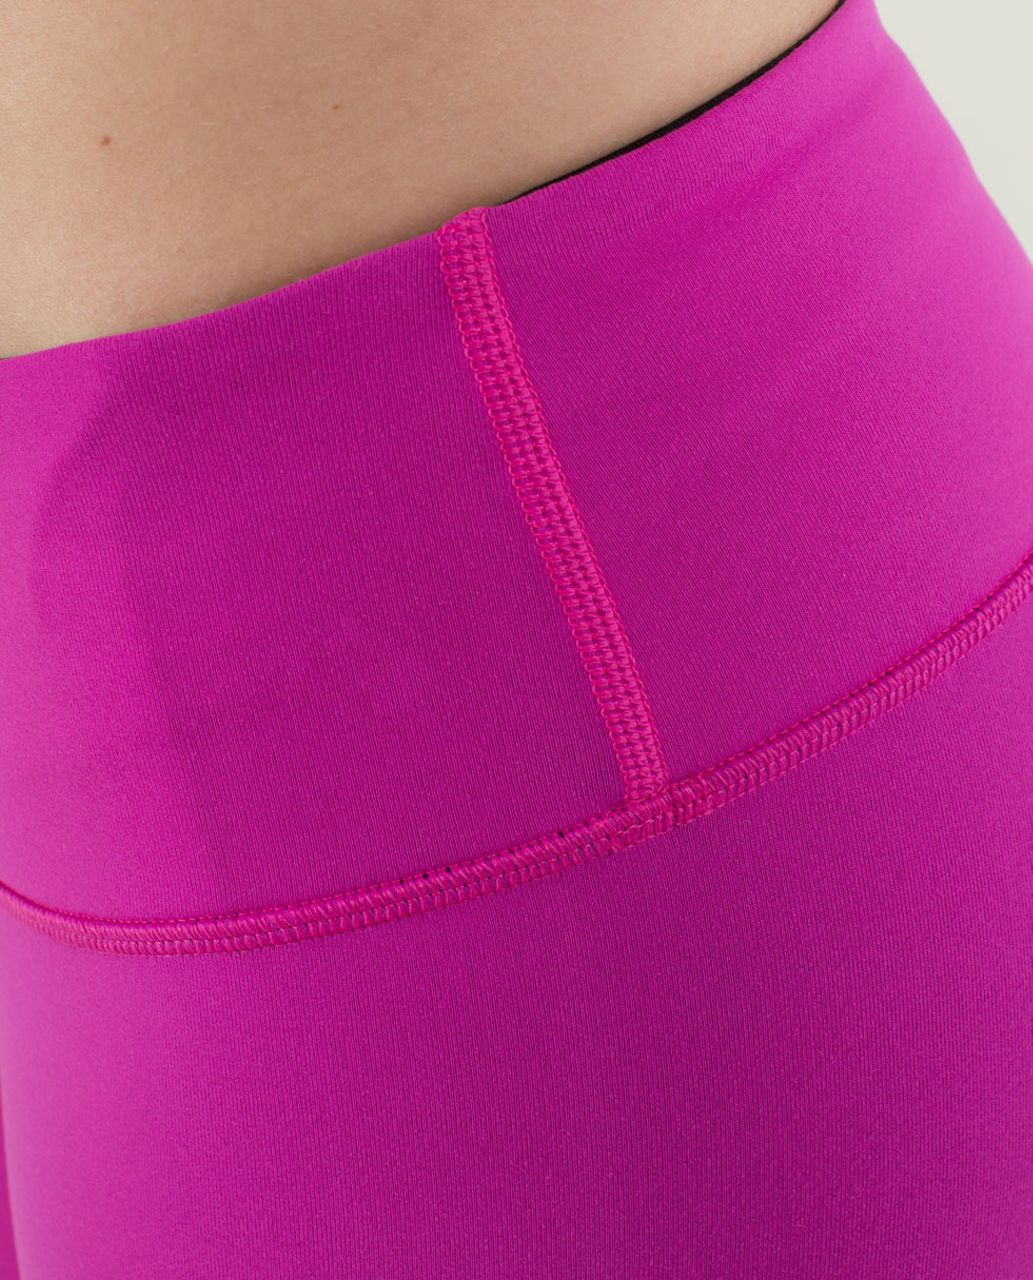 Lululemon Wunder Under Crop *Reversible - Black / Paris Perfection